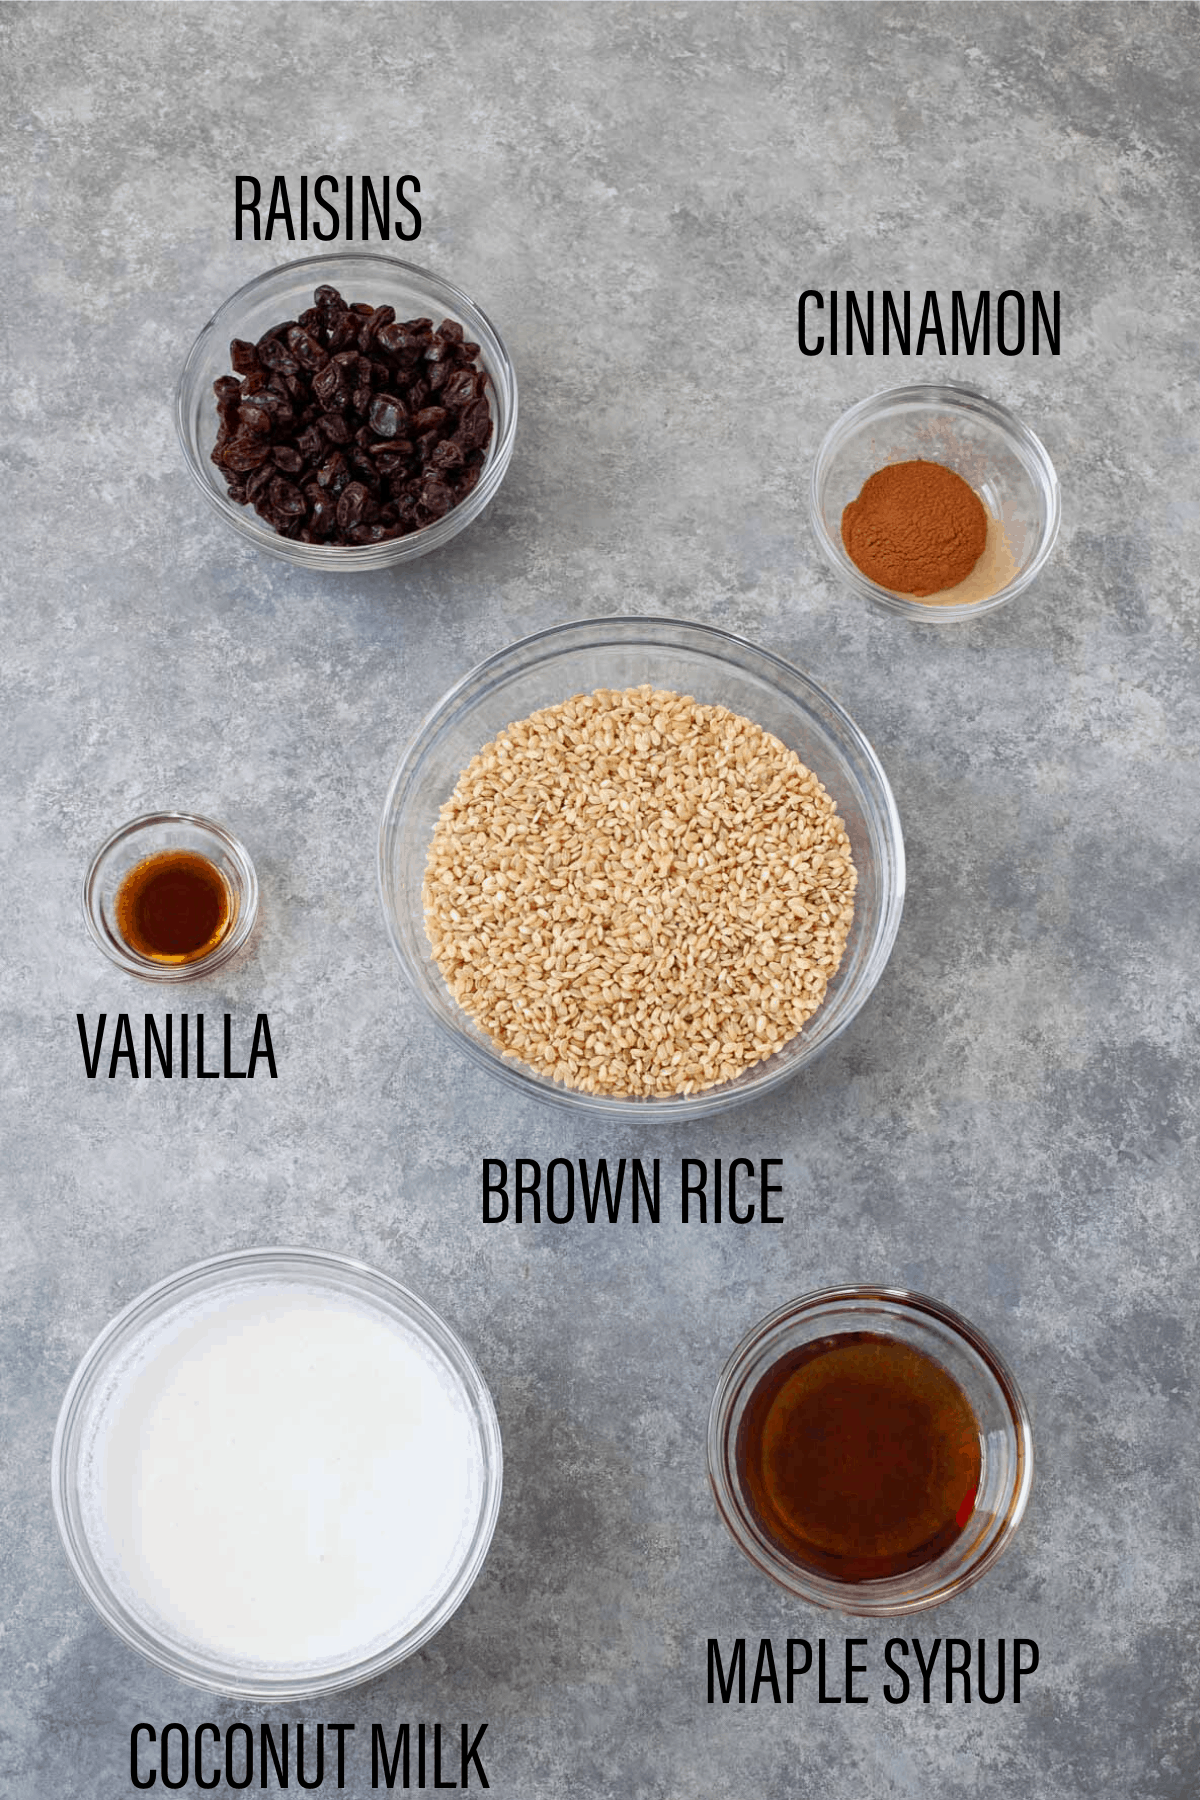 raisins, cinnamon, vanilla, brown rice, coconut milk, and maple syrup separated in various bowls